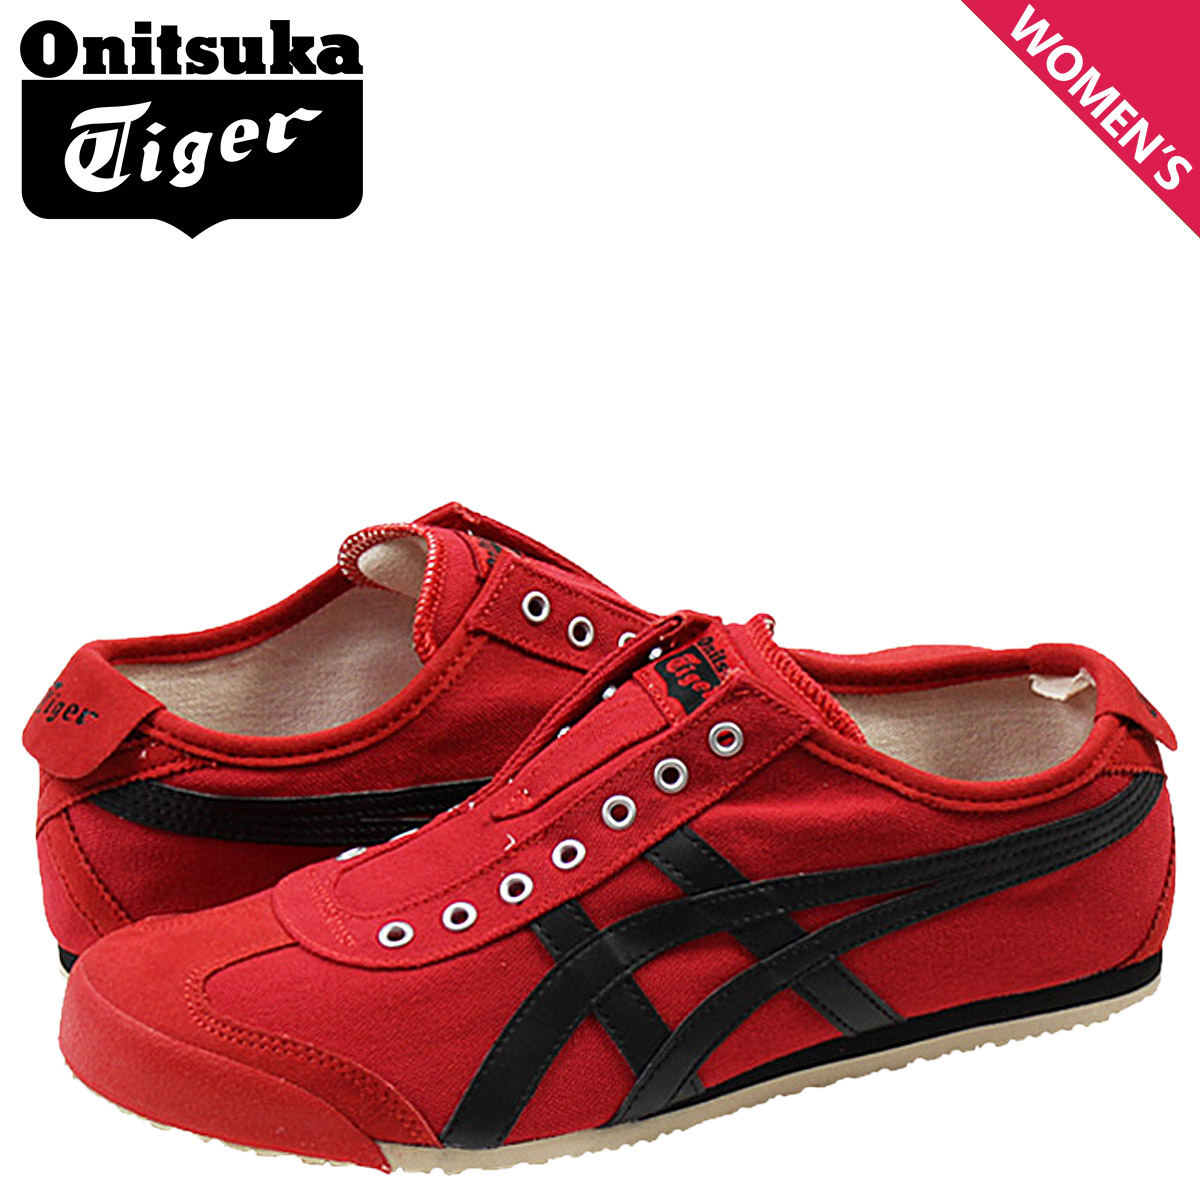 super popular da971 31bf4 Onitsuka tiger ASICS Onitsuka Tiger asics Lady's MEXICO 66 SLIP-ON sneakers  Mexico 66 slip-ons canvas TH3K0N-2390 red red